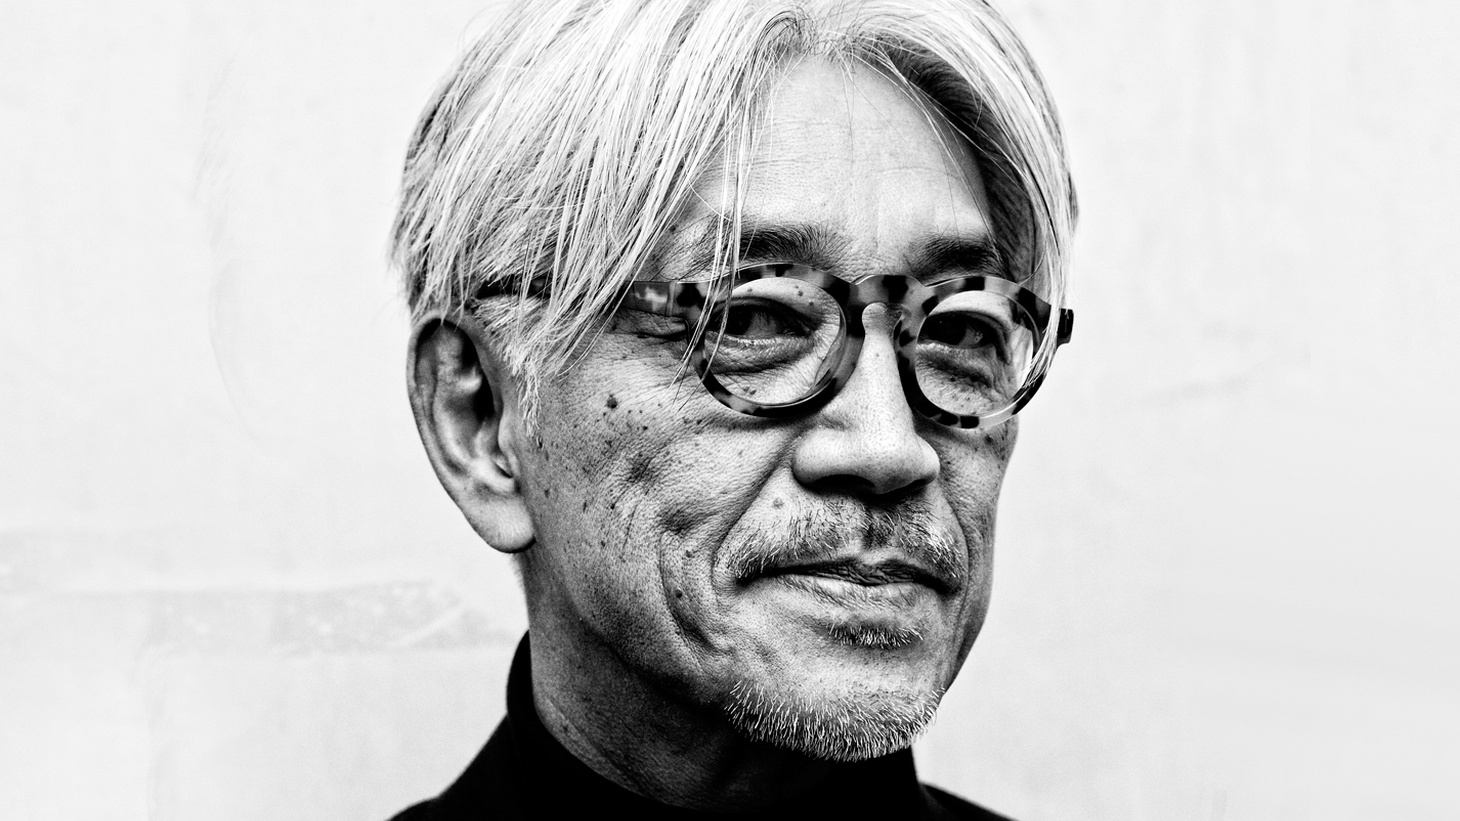 Ryuichi Sakamoto, one of our greatest contemporary composers, most recently for Alejandro Iñárittu on the award winning film The Revenant, sits down with KCRW's Chris Douridas.(10am)